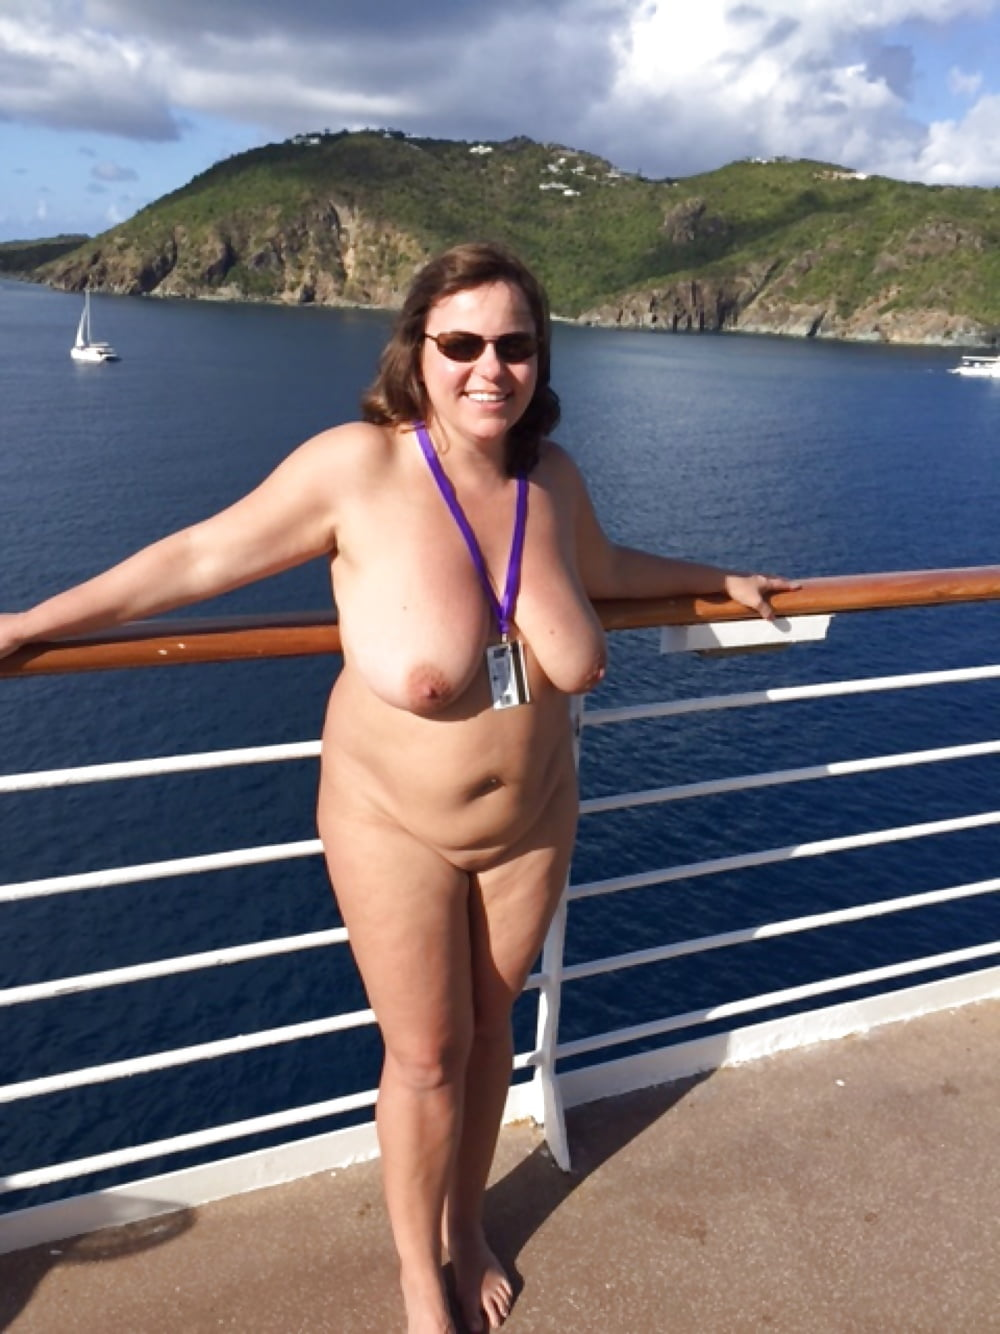 Nude mature cruiseship pictures #9